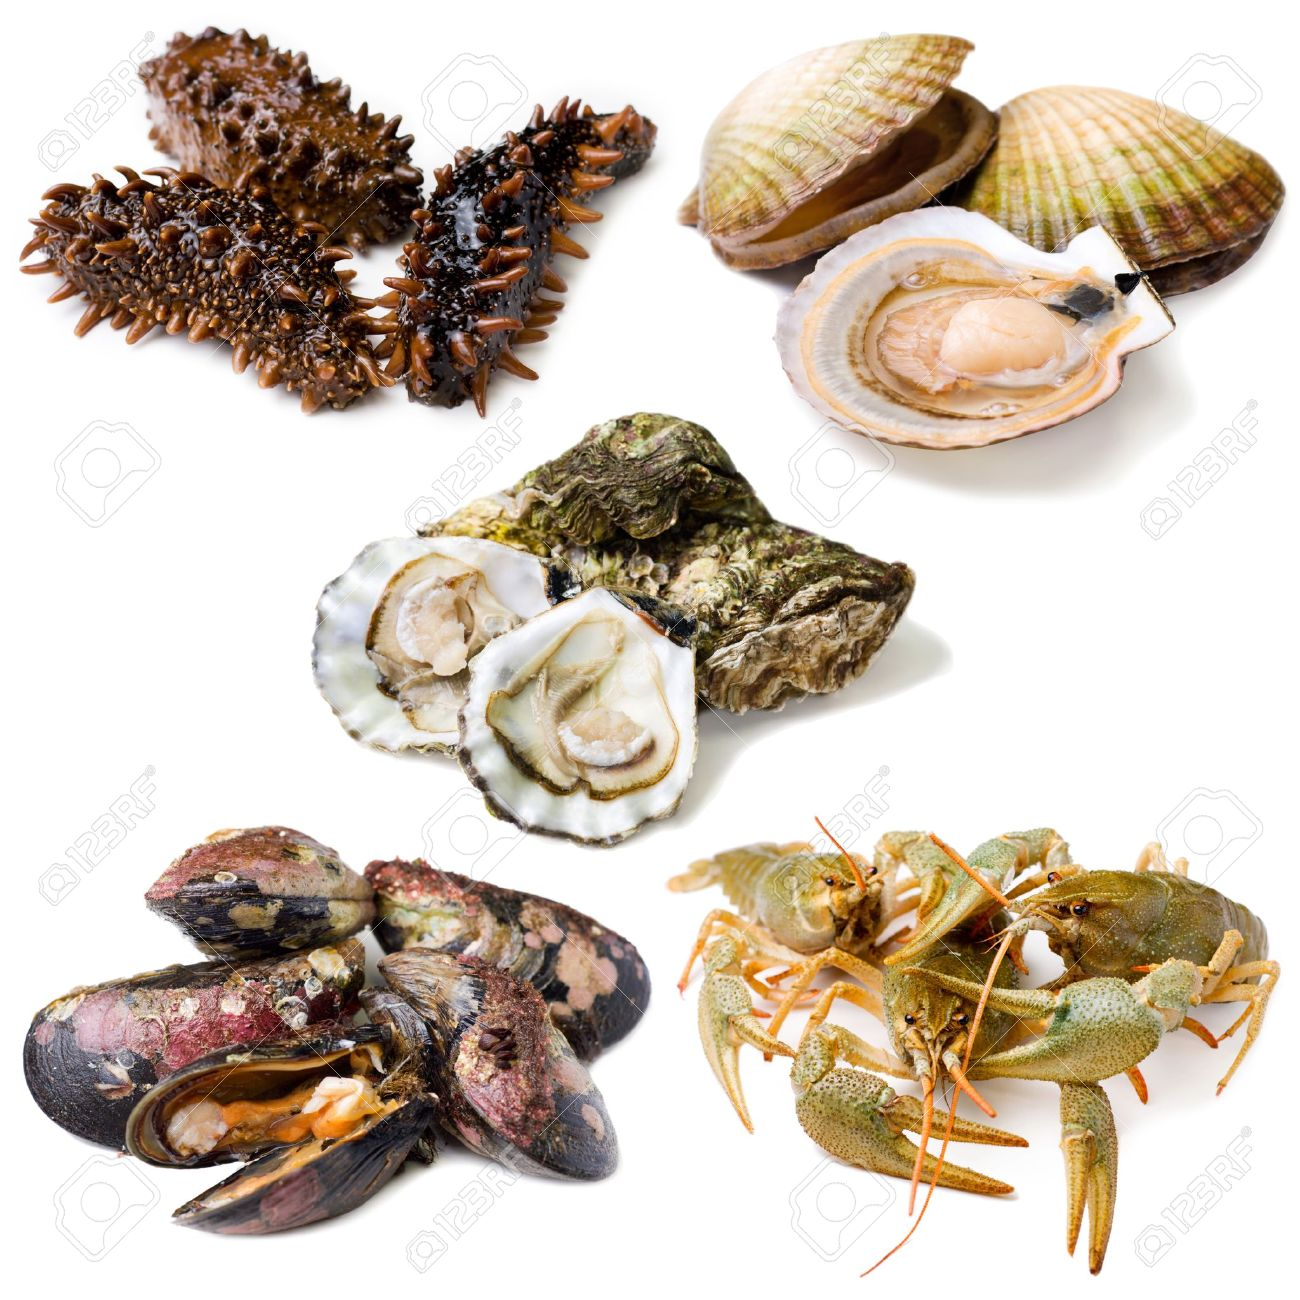 Group of fresh alive seafood: trepang (tripang, stichopus japonicus), scallops (Pecten maximus), oysters, mussels and crawfishes. Isolated on white background. - 14230614